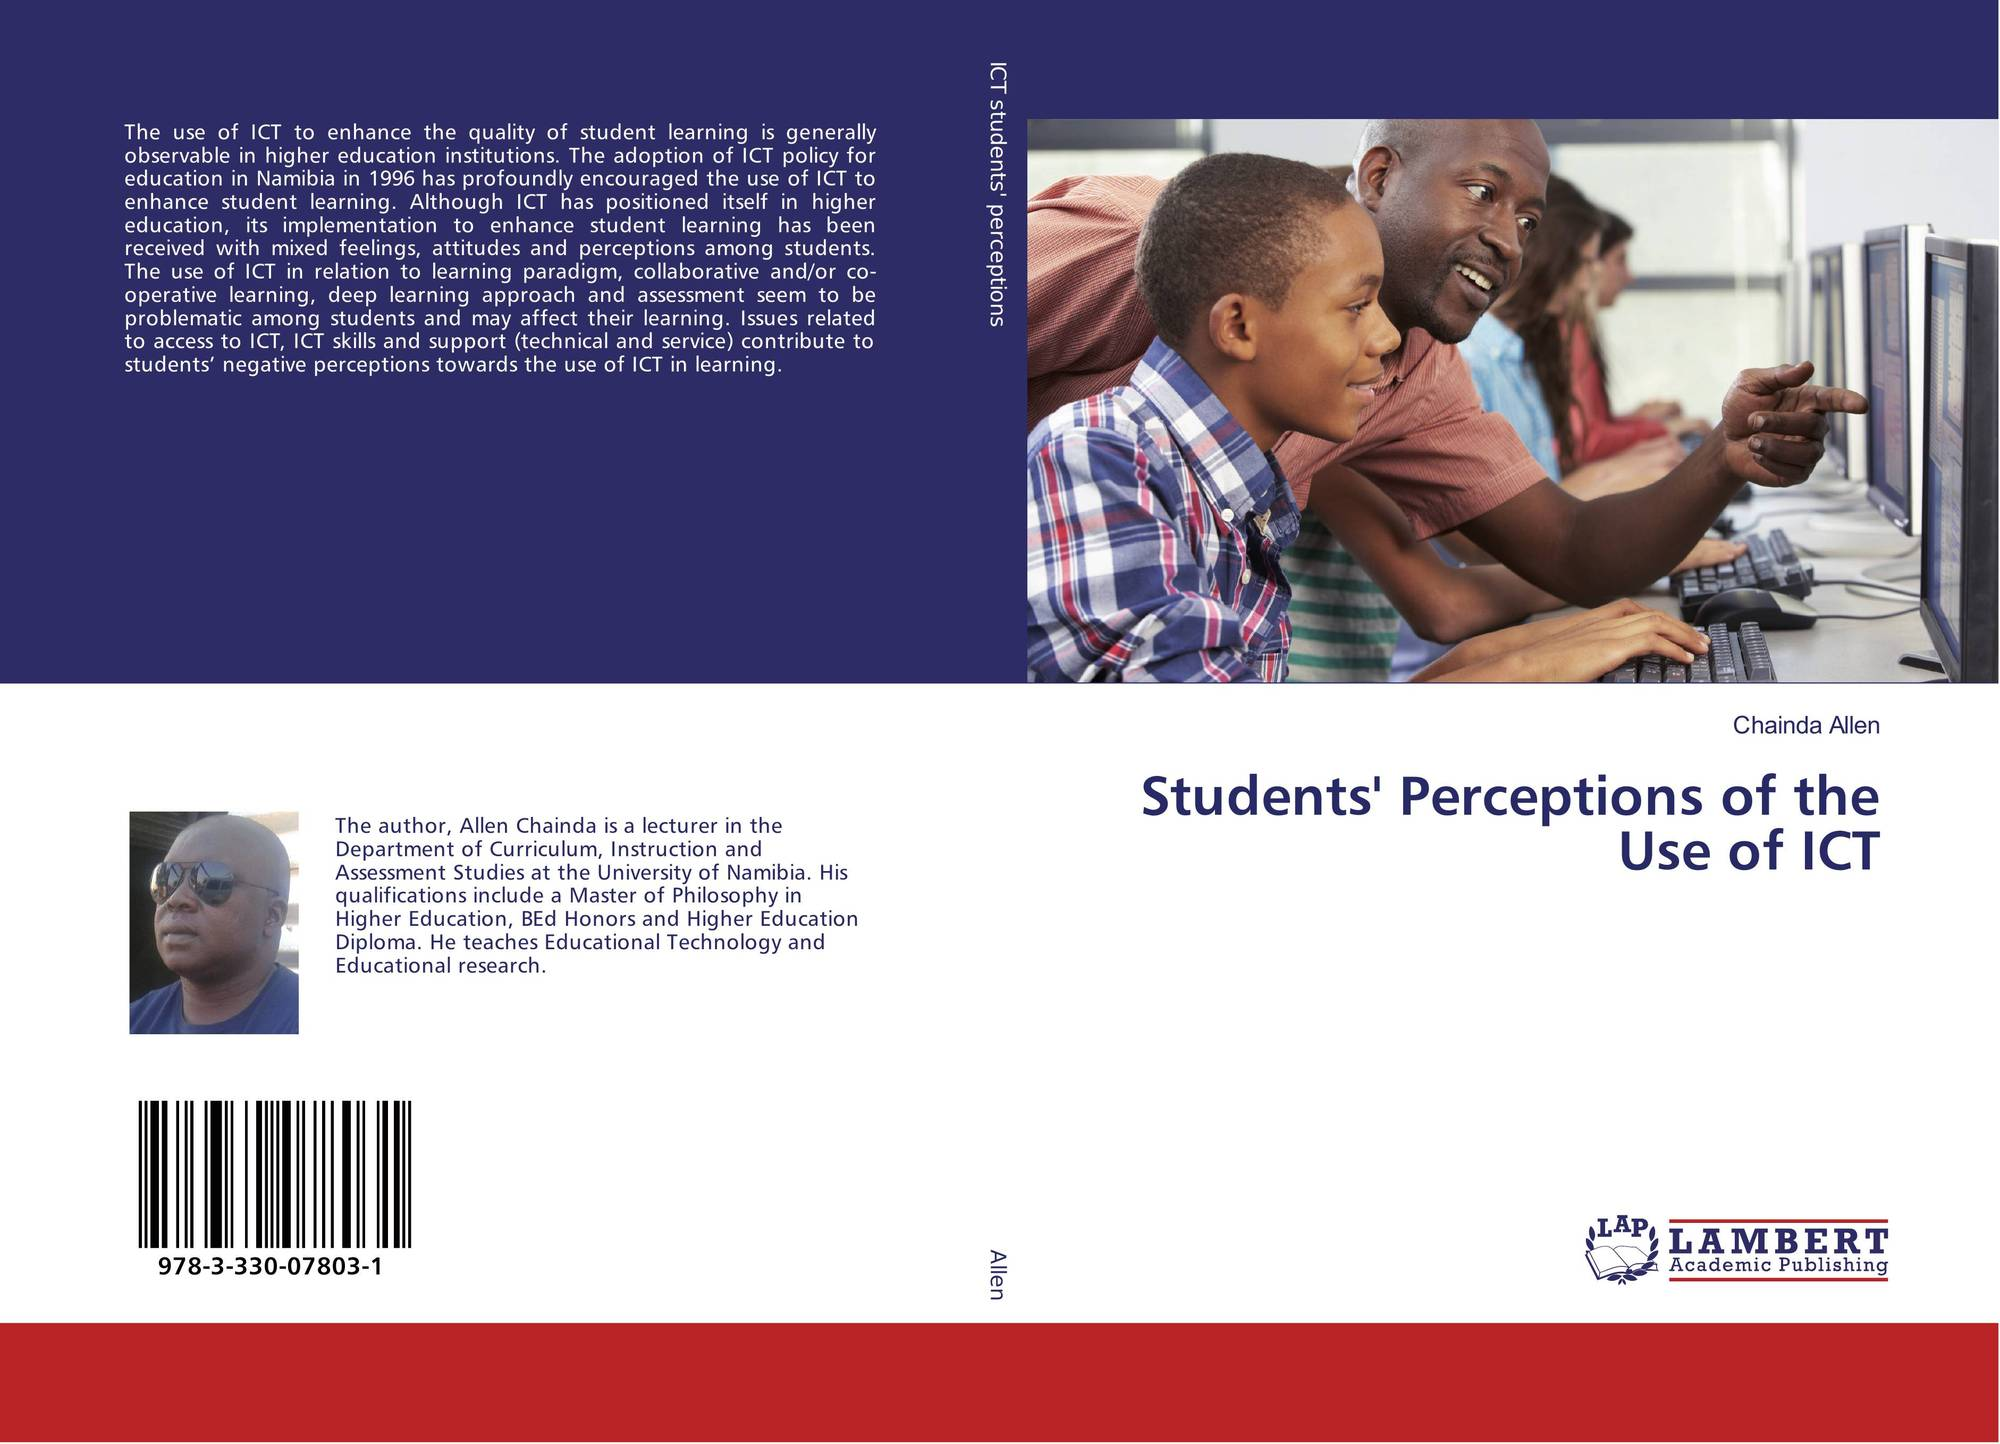 students perception on the use of However, research on students' perceptions on the use of educational technology for learning seems to be lacking, especially in the turkish educational context.